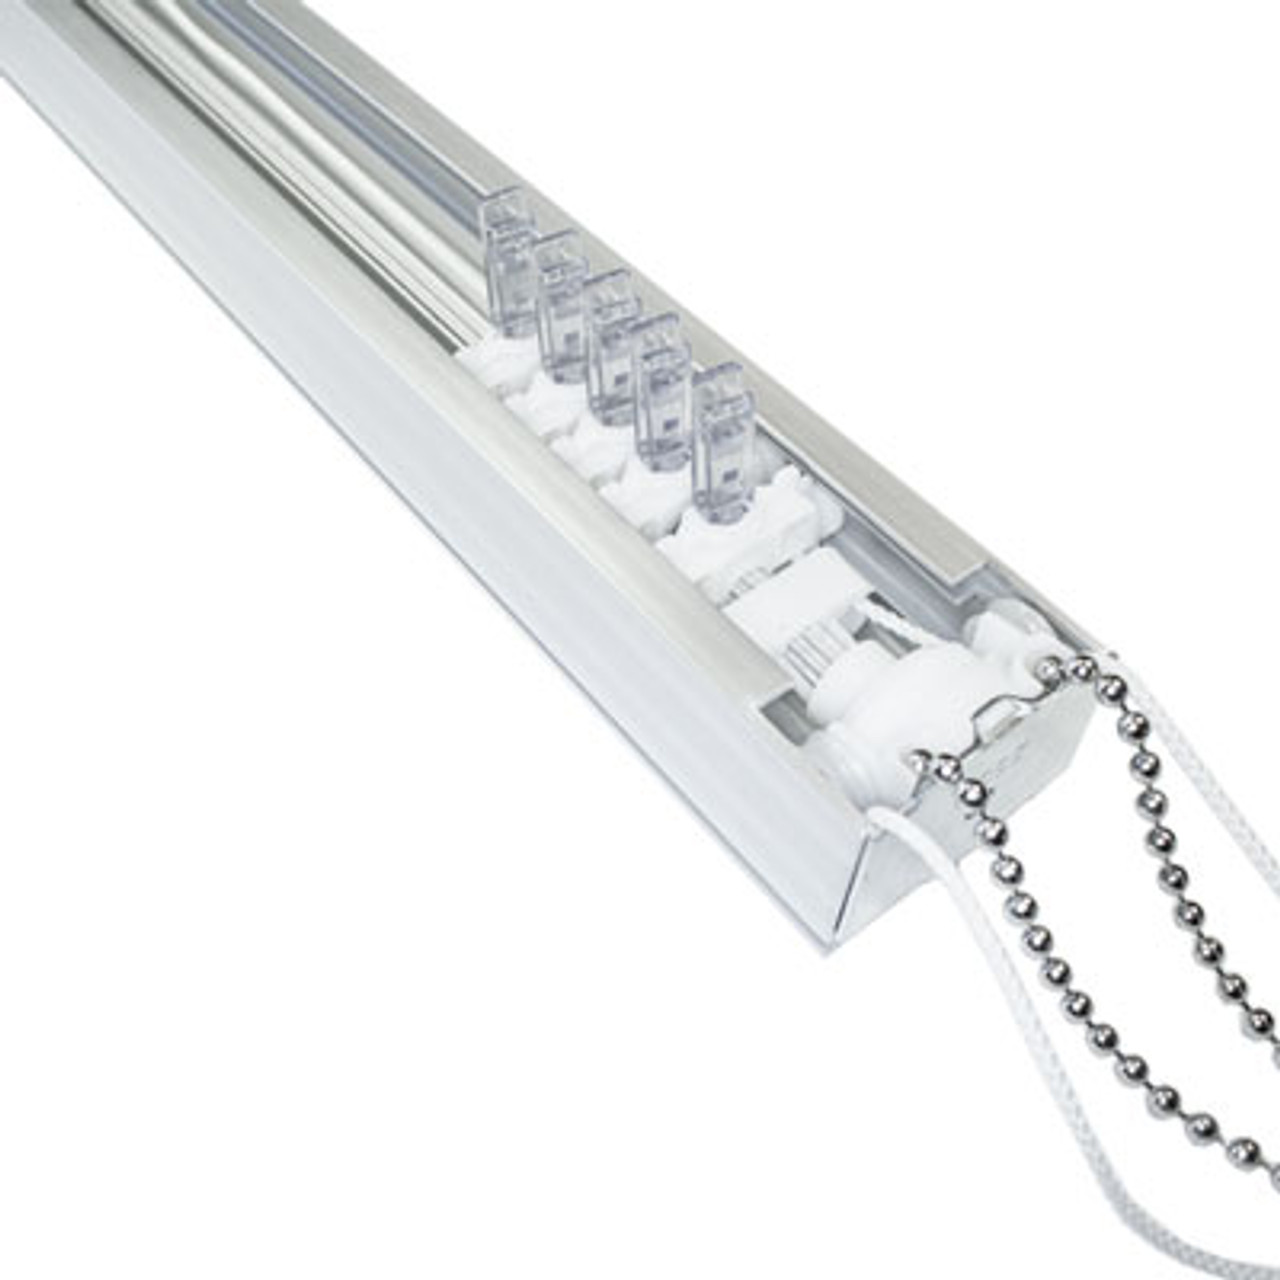 Vertical Blind Replacement Track - 8 Prong - 8 ft to 12 Ft. Wide - Complete & Ready for Install